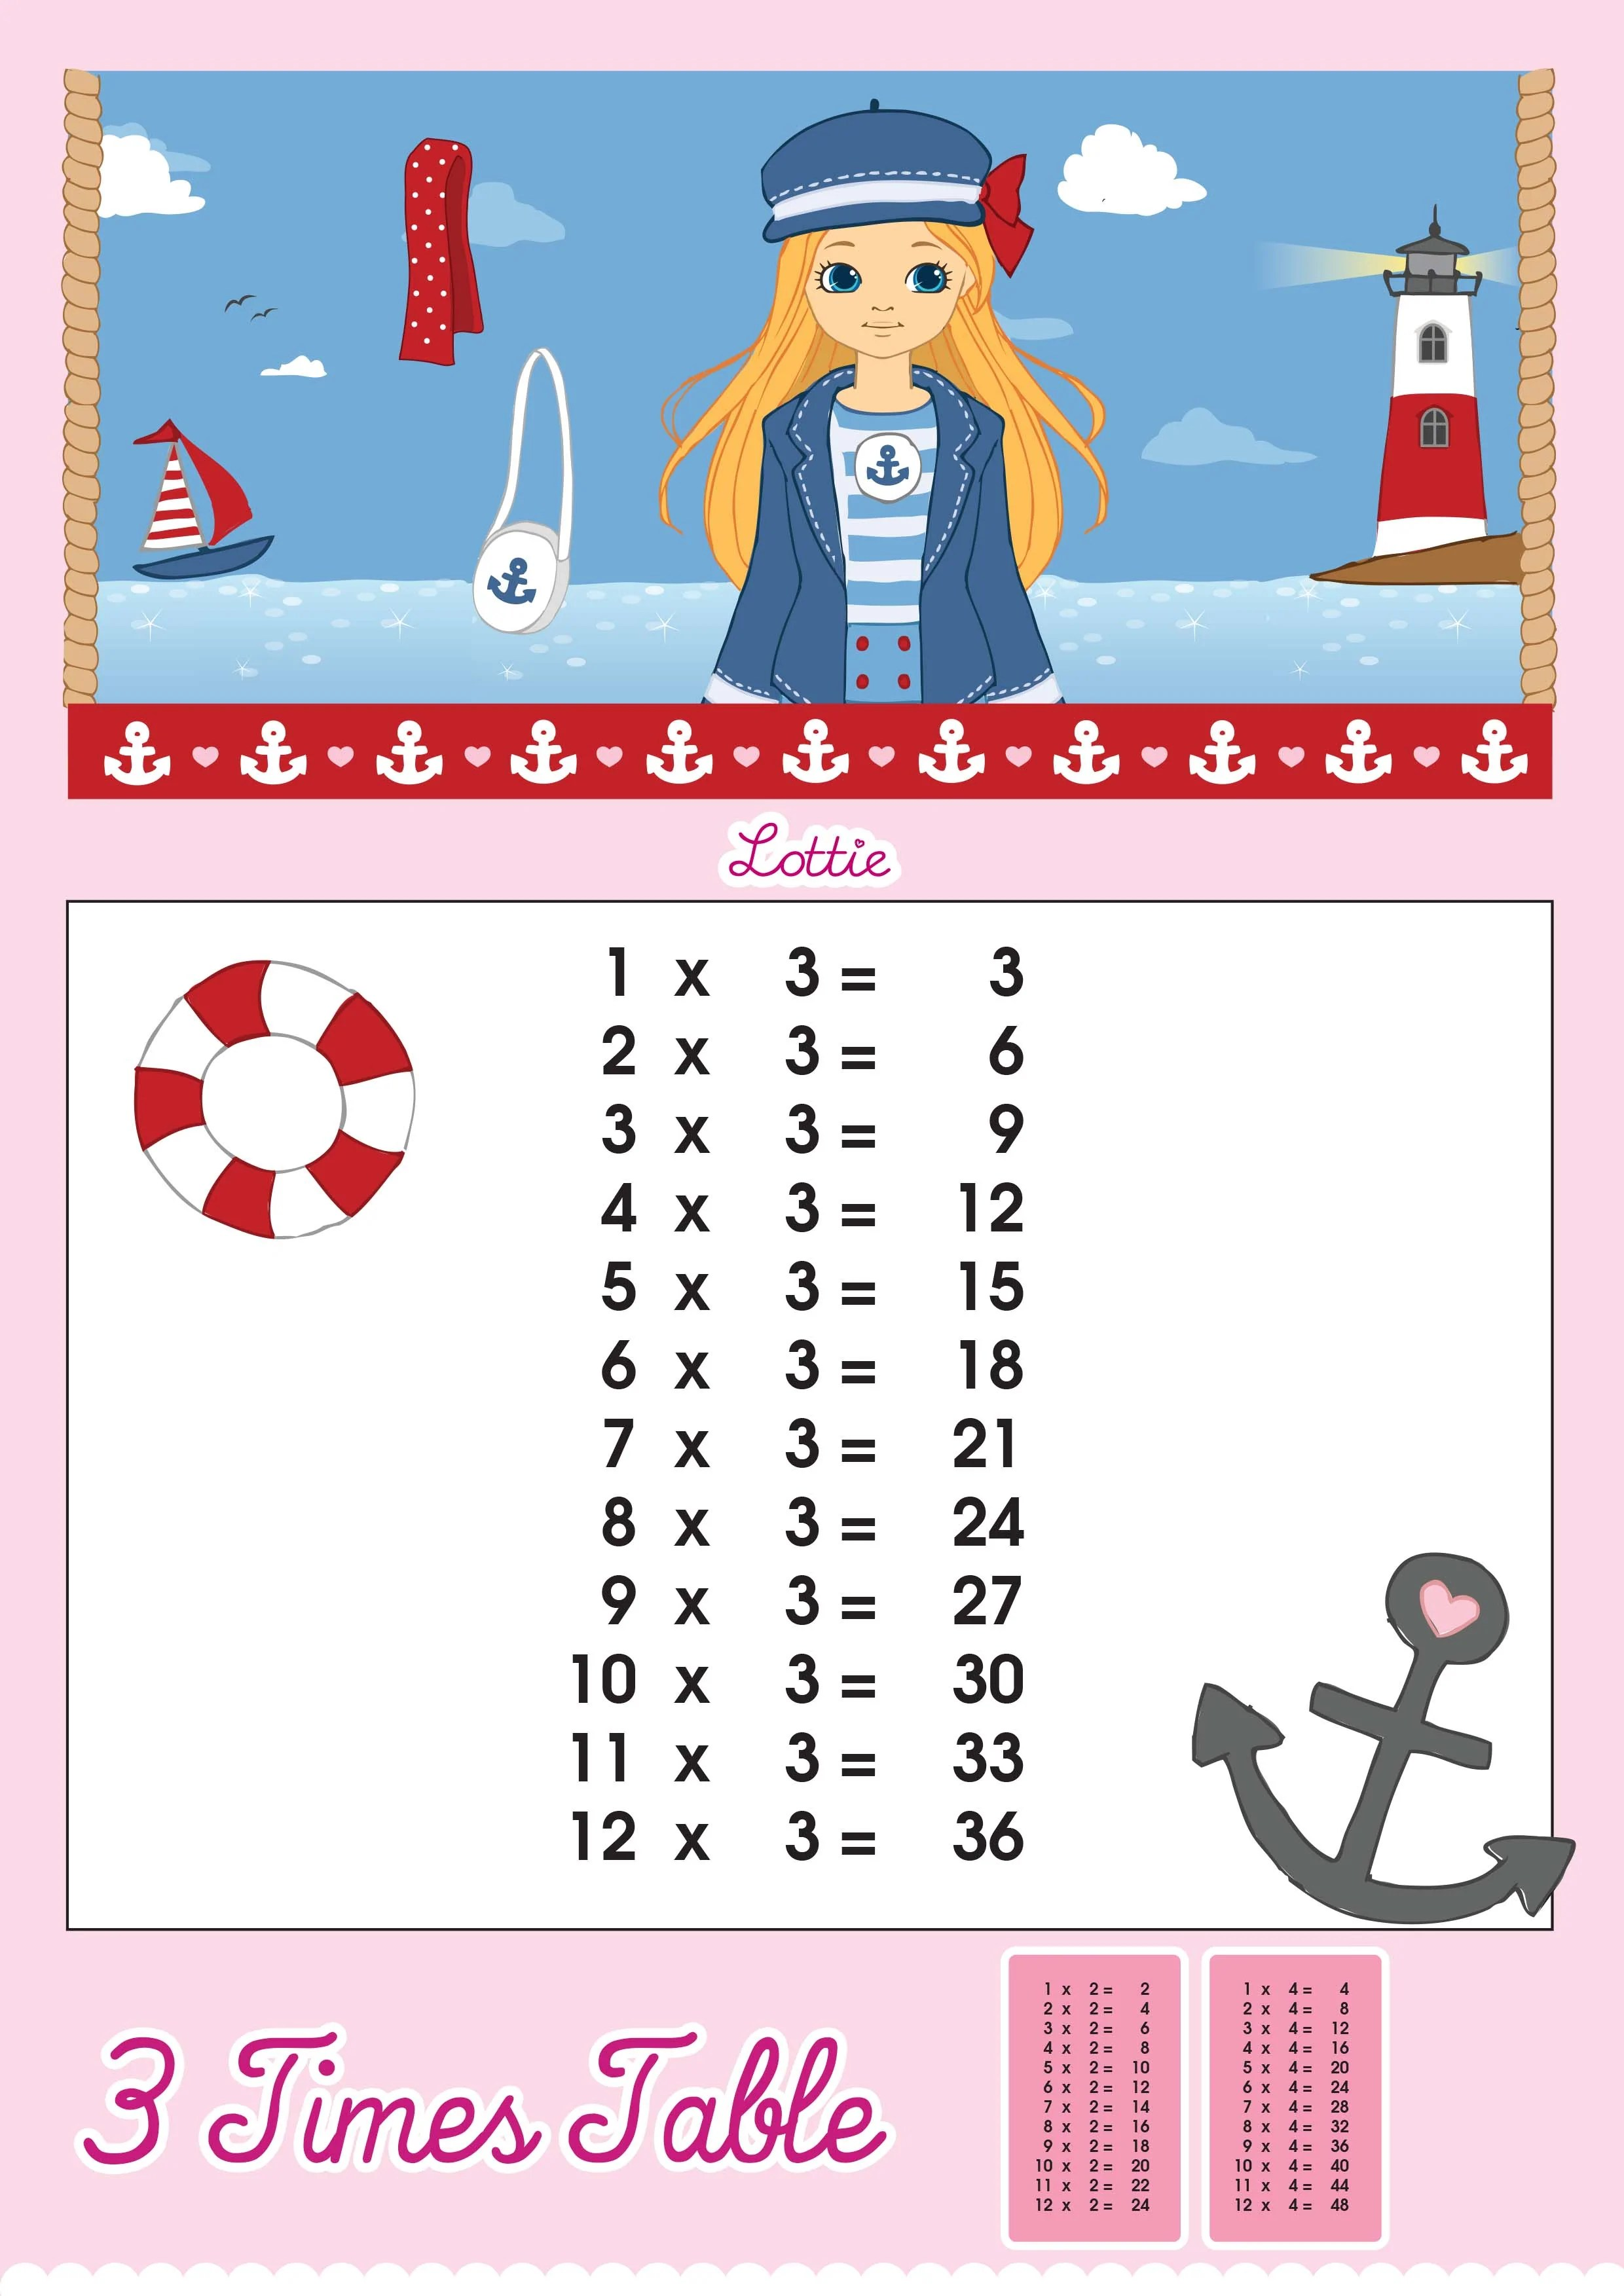 3 Times Table Printable Chart Lottie Dolls